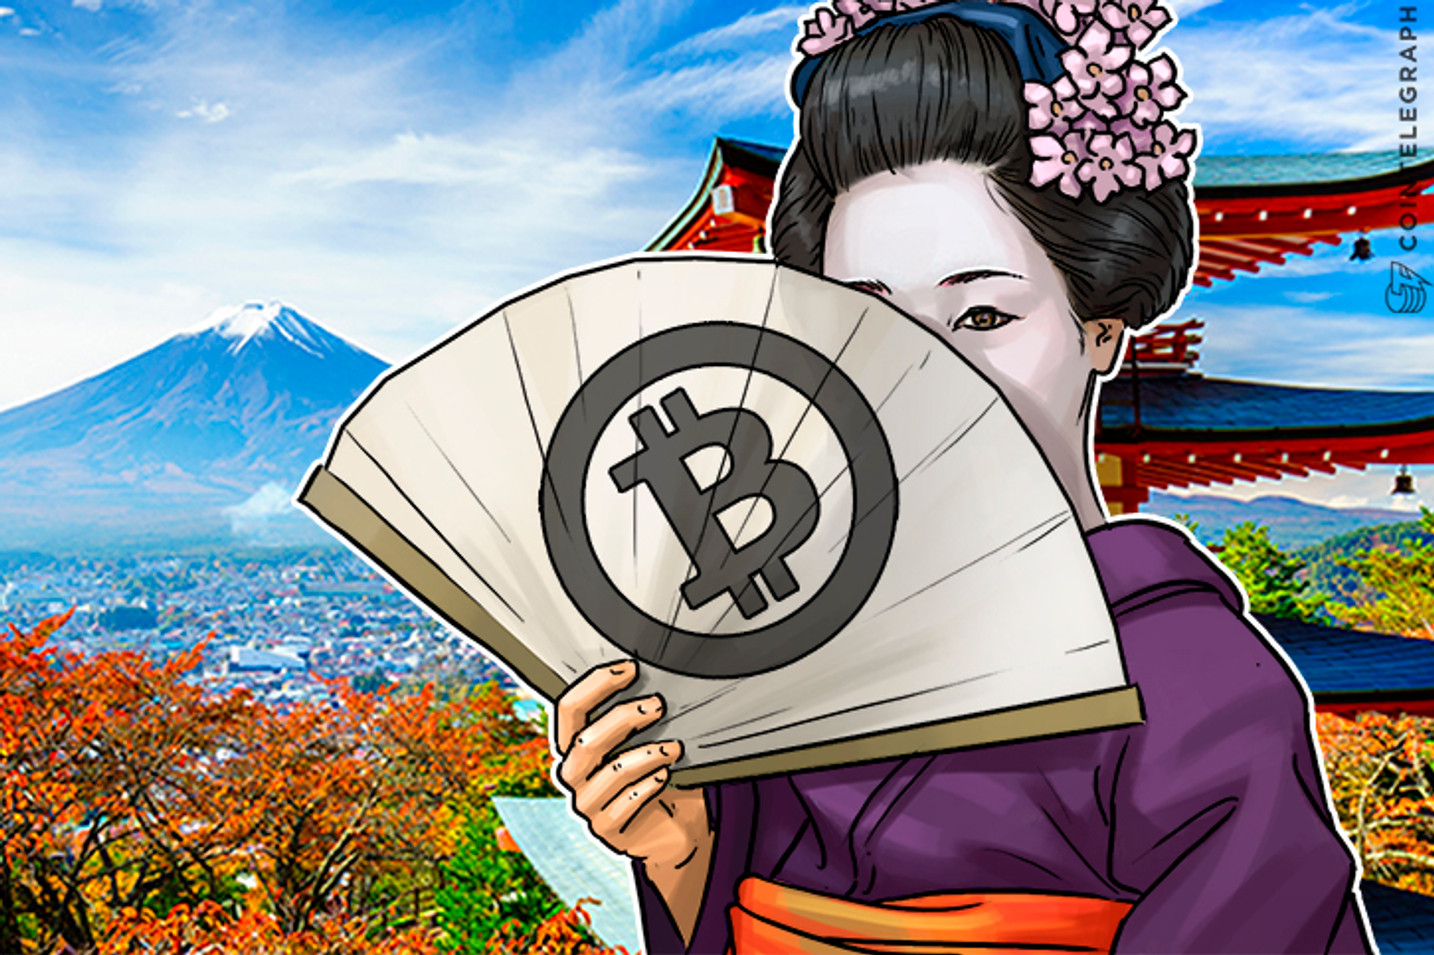 Japan's Bitcoin Exchanges Getting Ready To Secure Smooth Operations After August 1